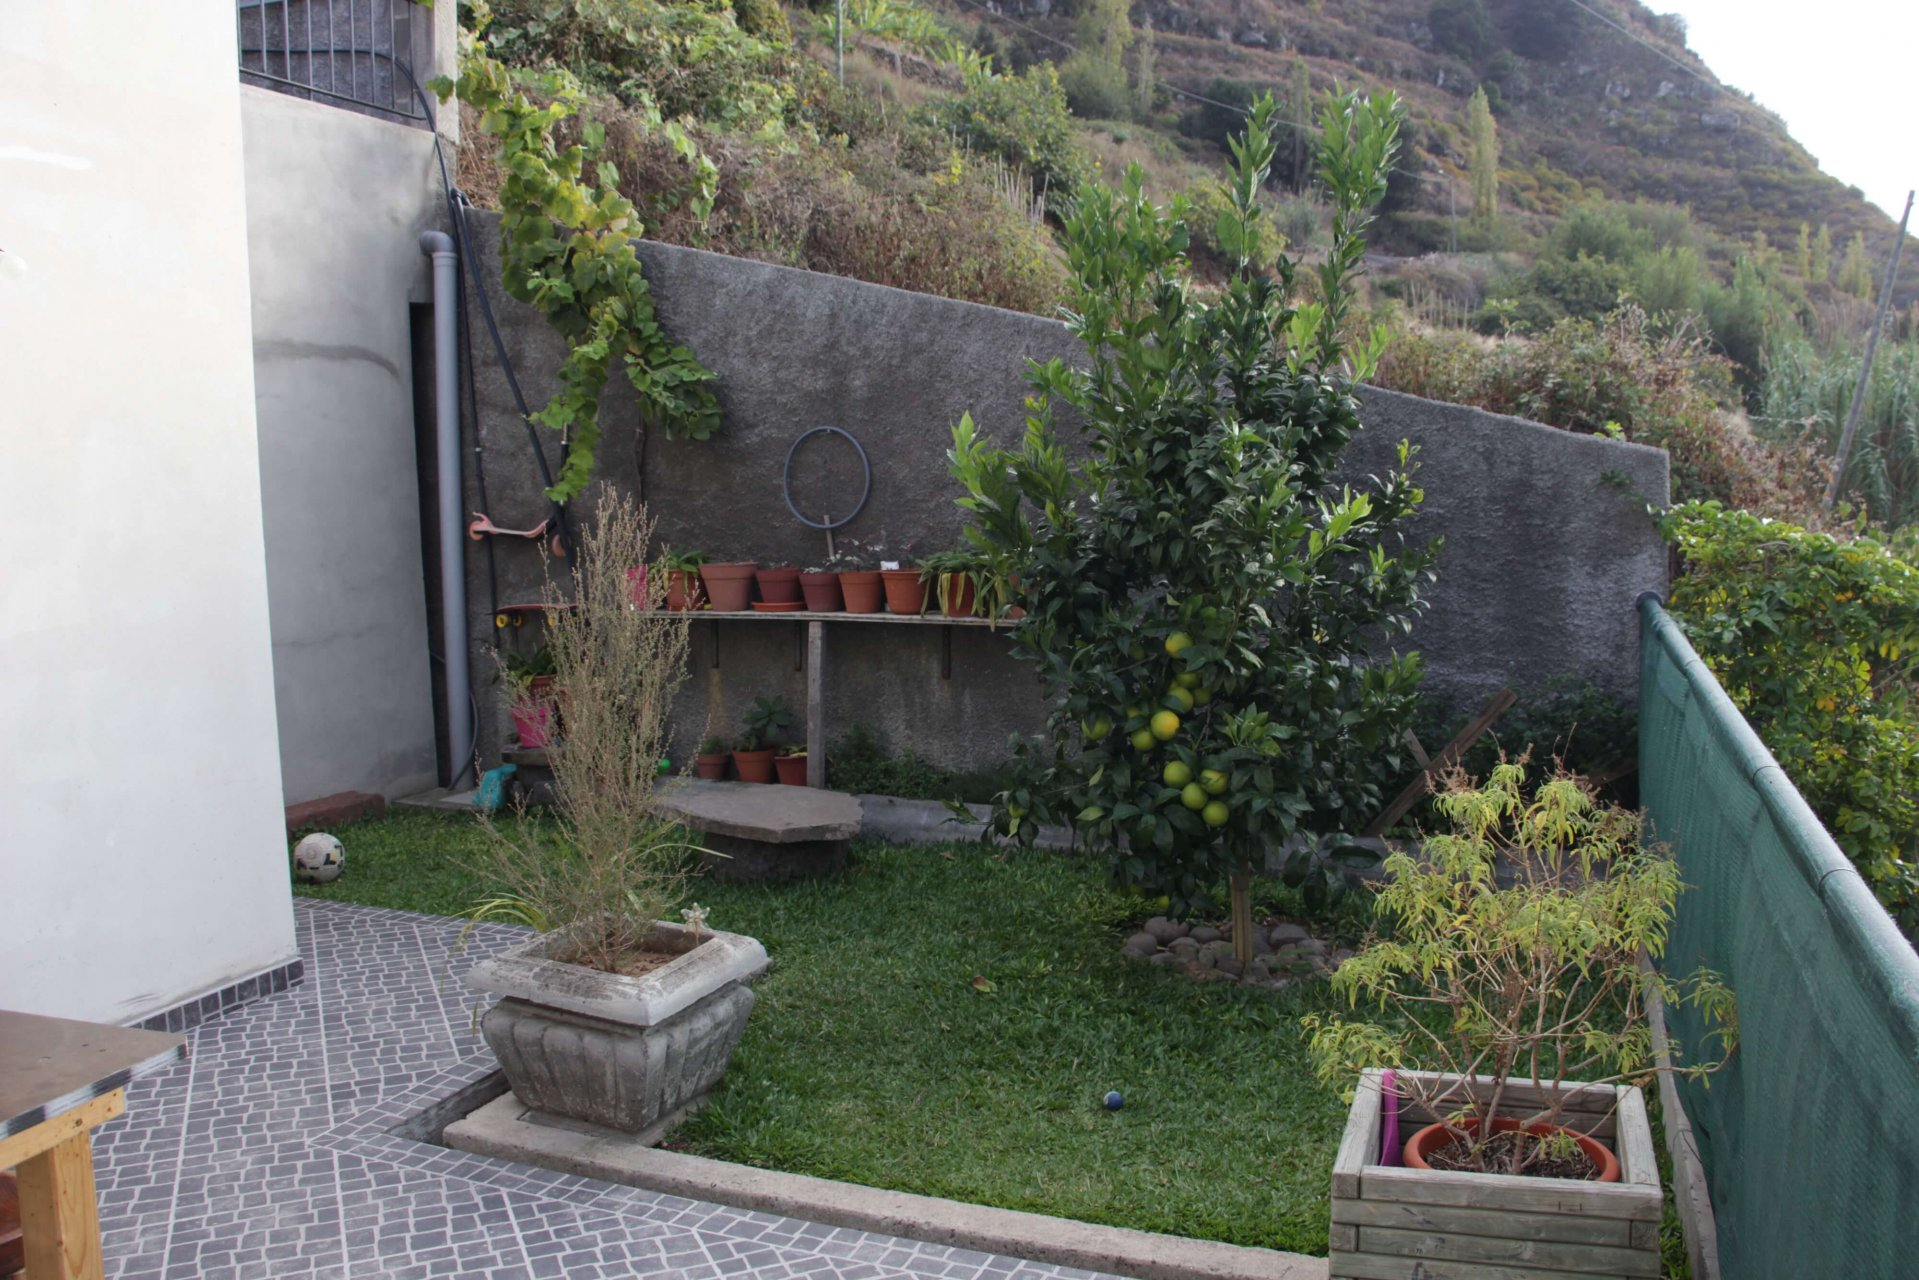 T3 House of 120 m2 in perfect condition with a Nice View in Ribeira Brava.